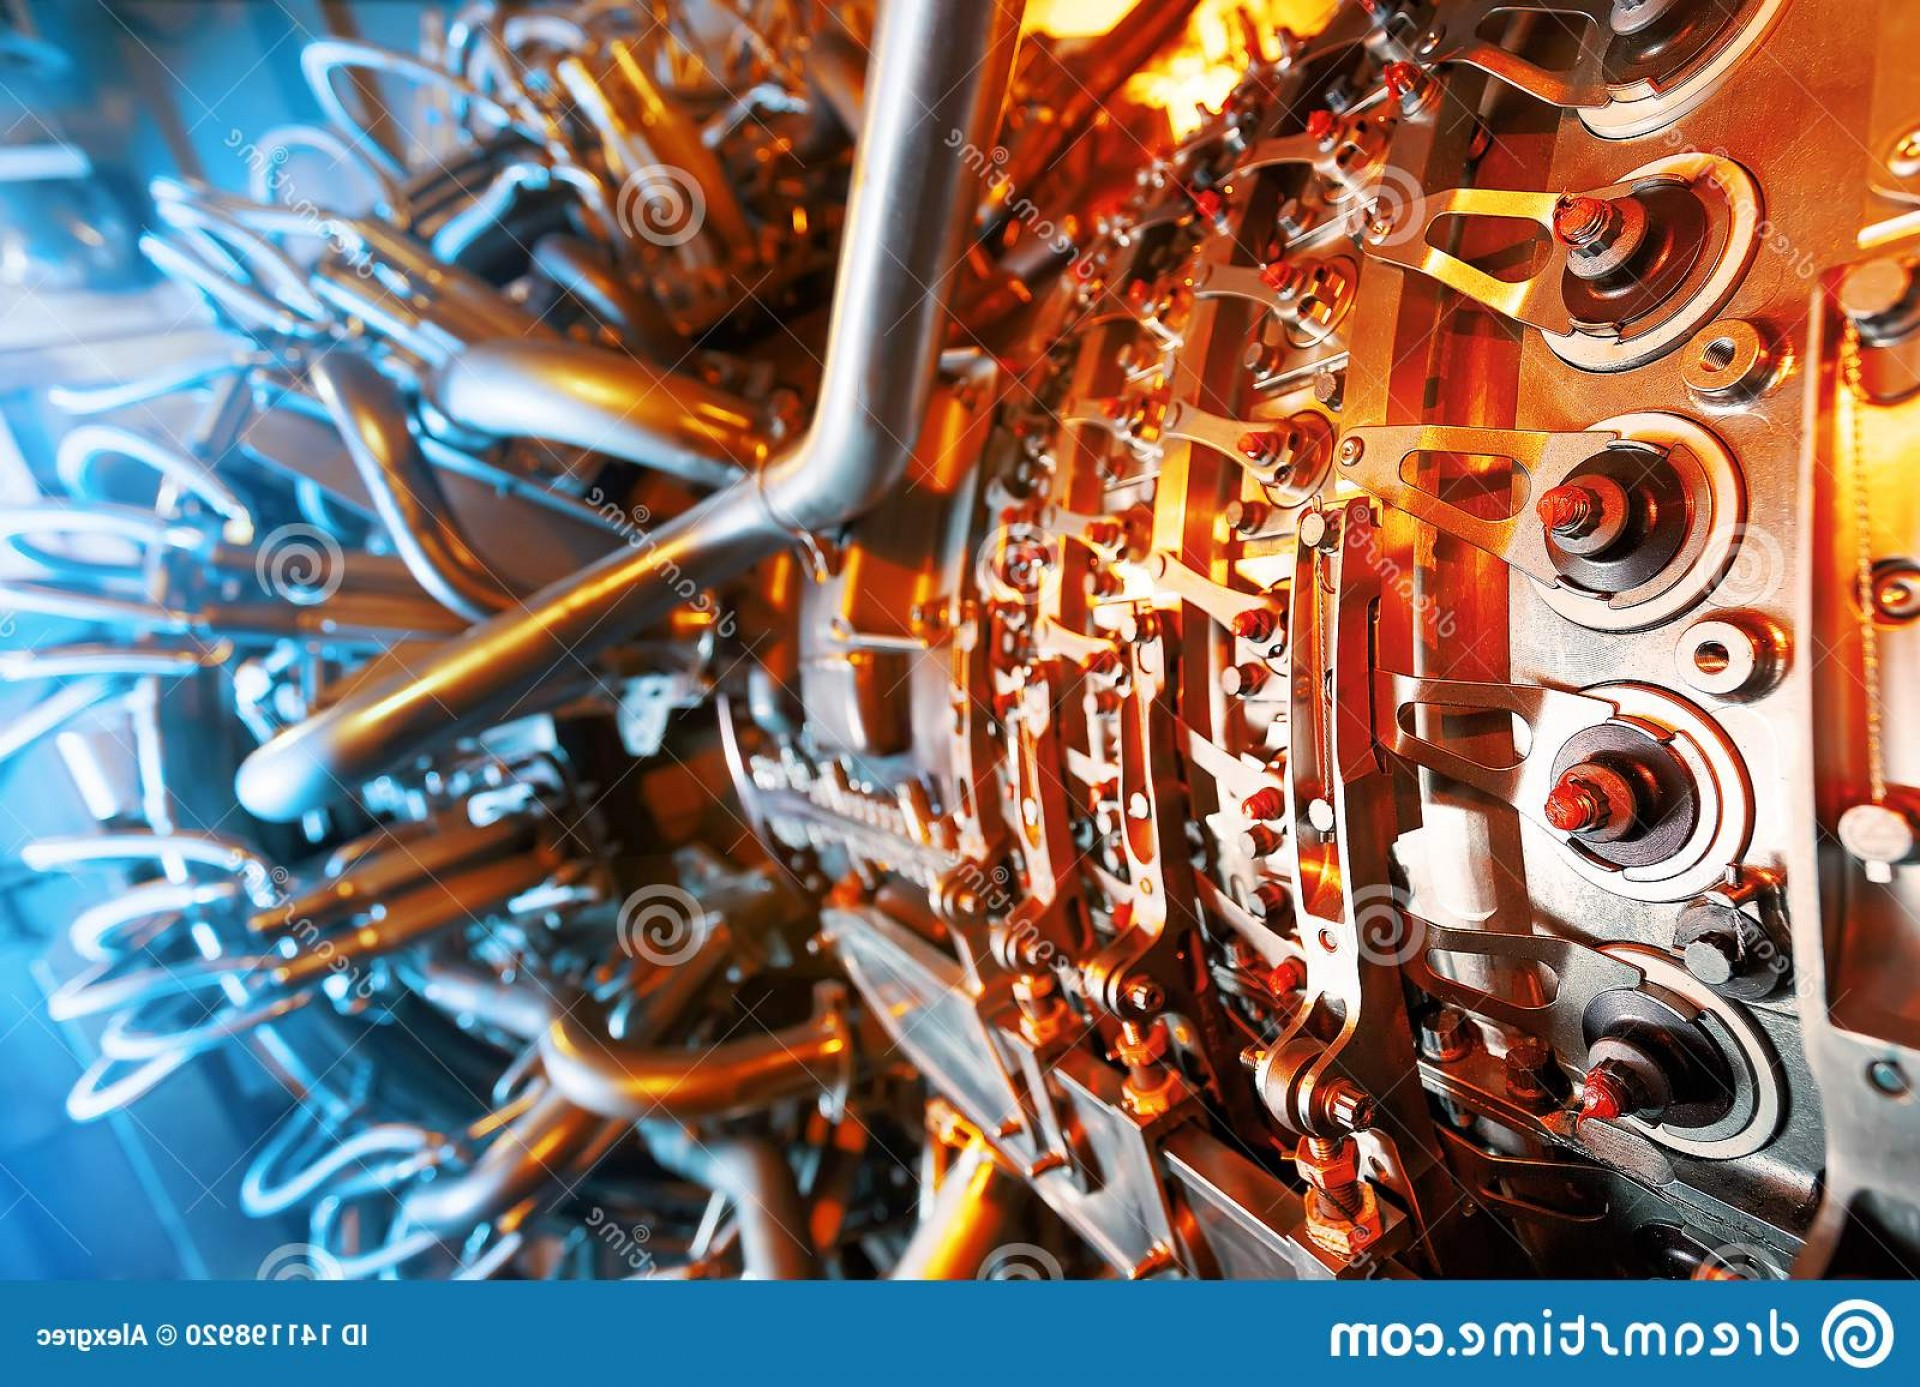 Concept Axial Vector Engine: Gas Turbine Engine Located Inside Aircraft Clean Energy Power Plant Used Offshore Oil Gas Refining Central Image